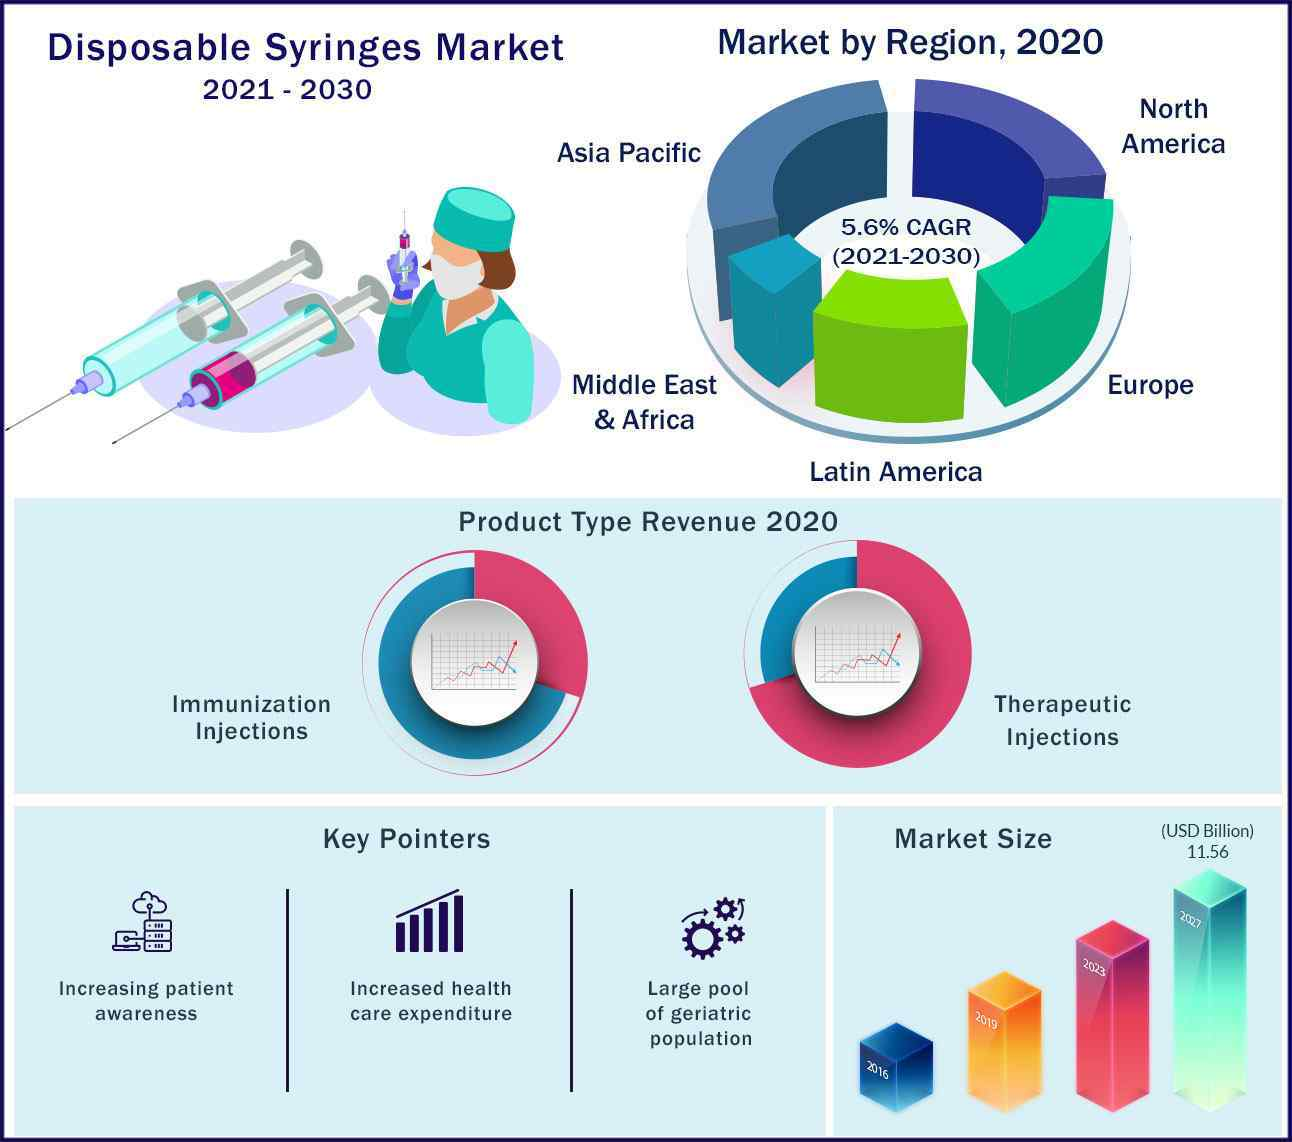 Global Disposable Syringes Market 2021 to 2030